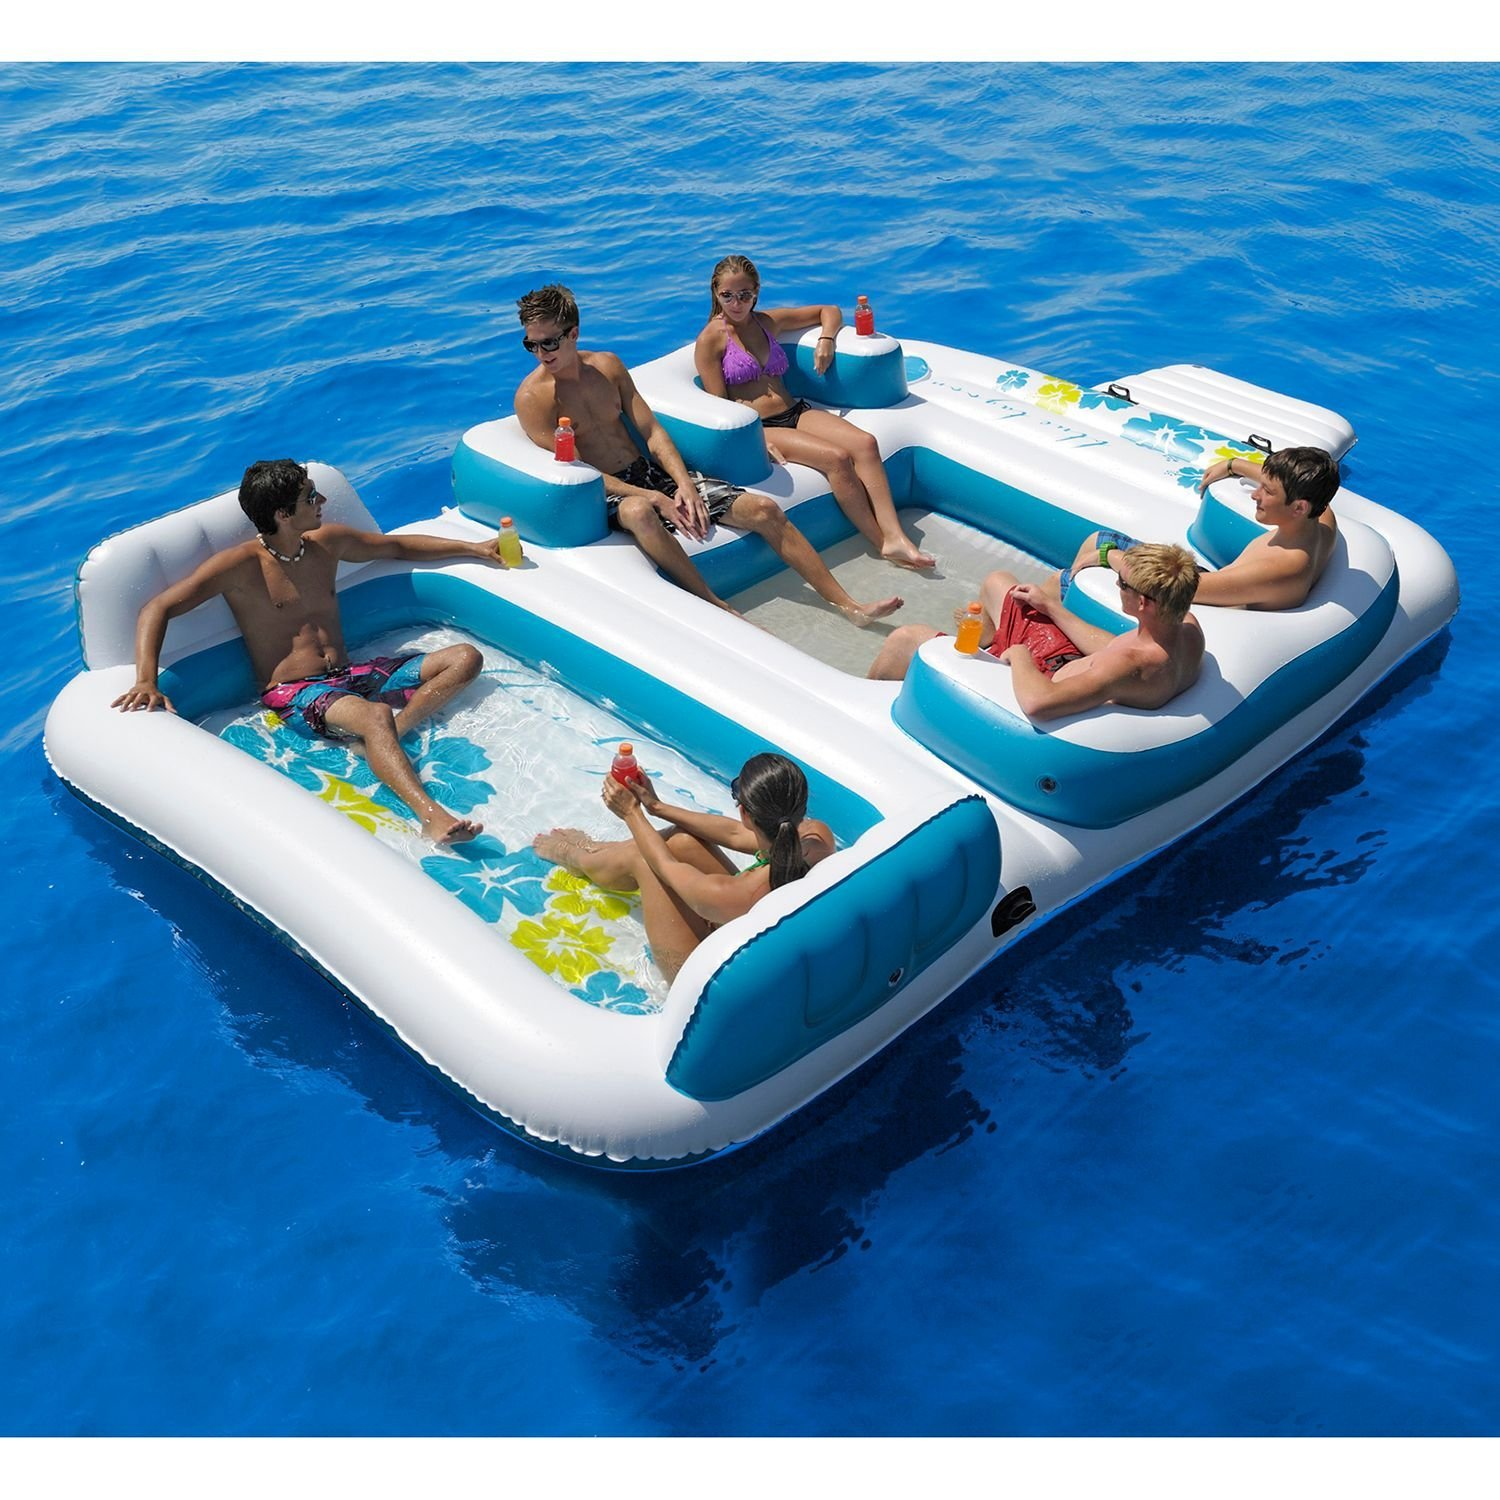 New Giant Inflatable Floating Island 6 From Amazon Things I